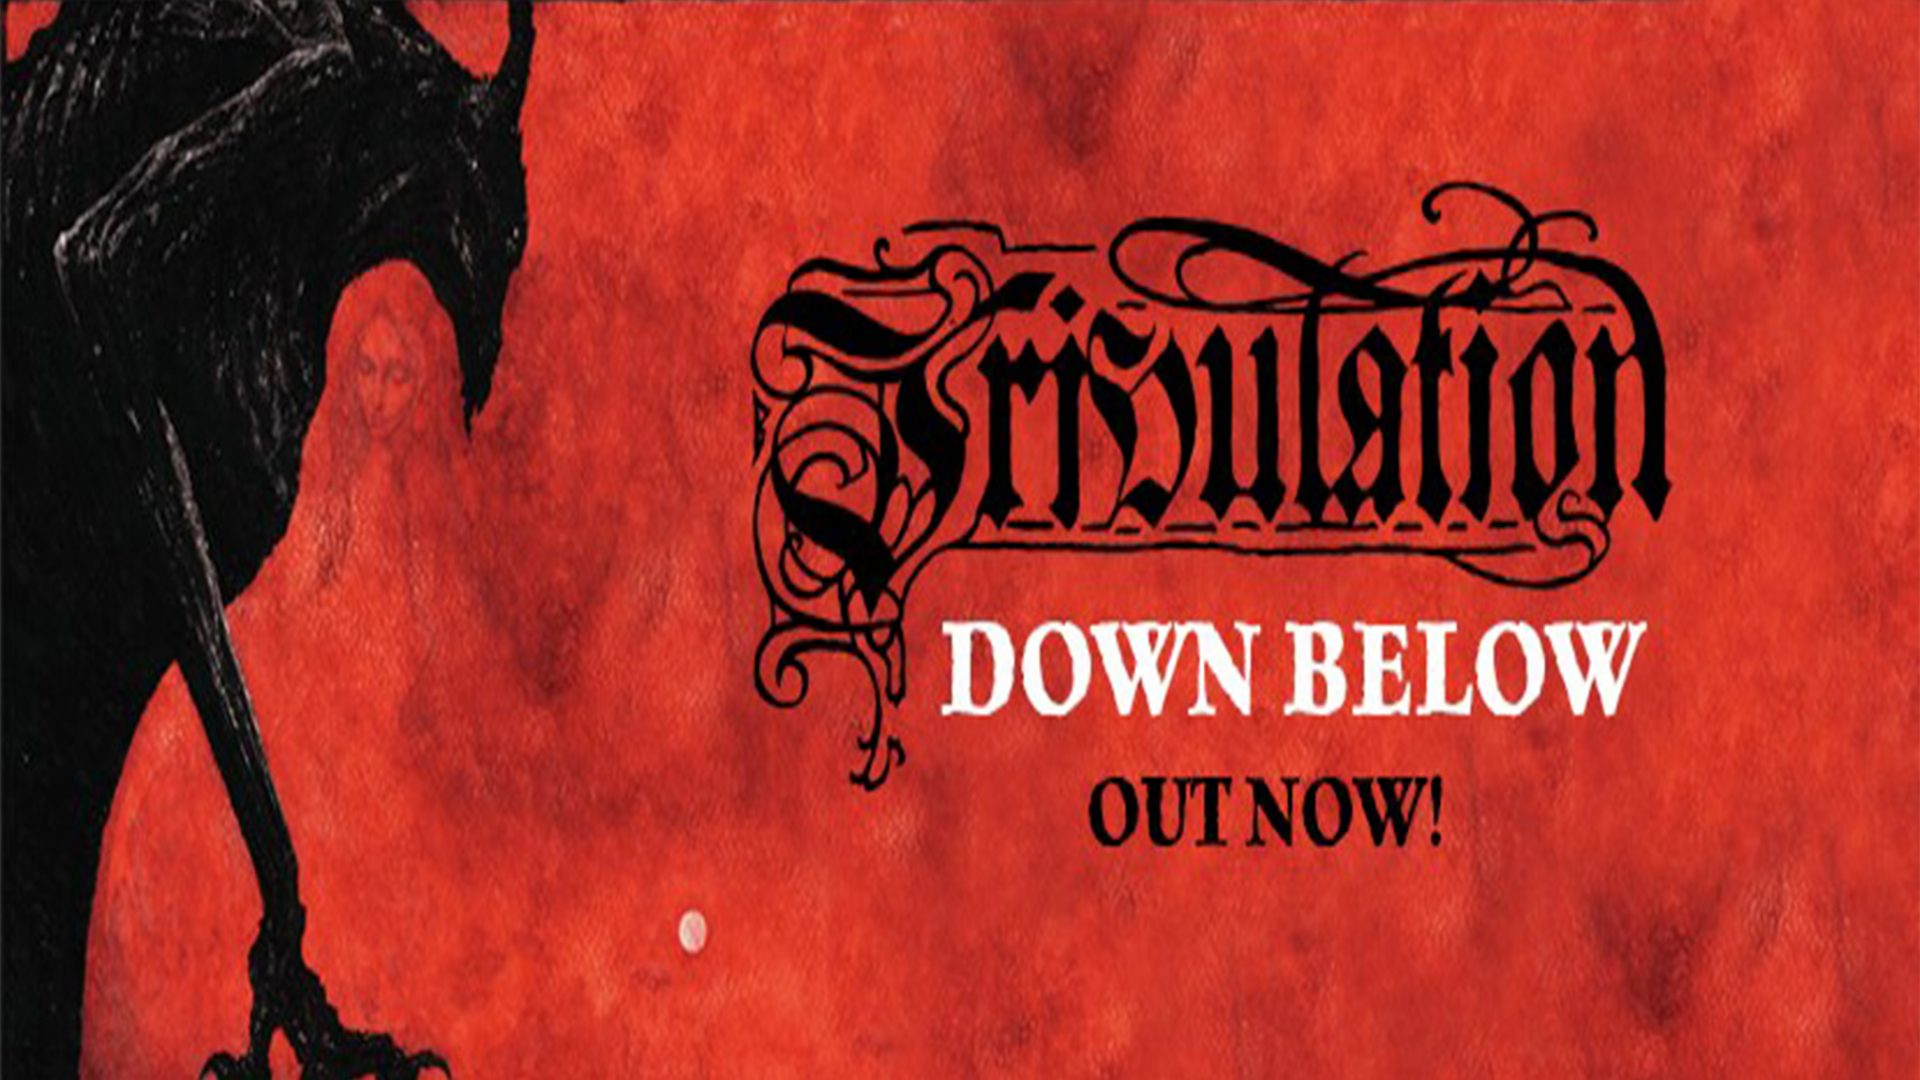 Tribulation released their 4th full length 'Down Below ...